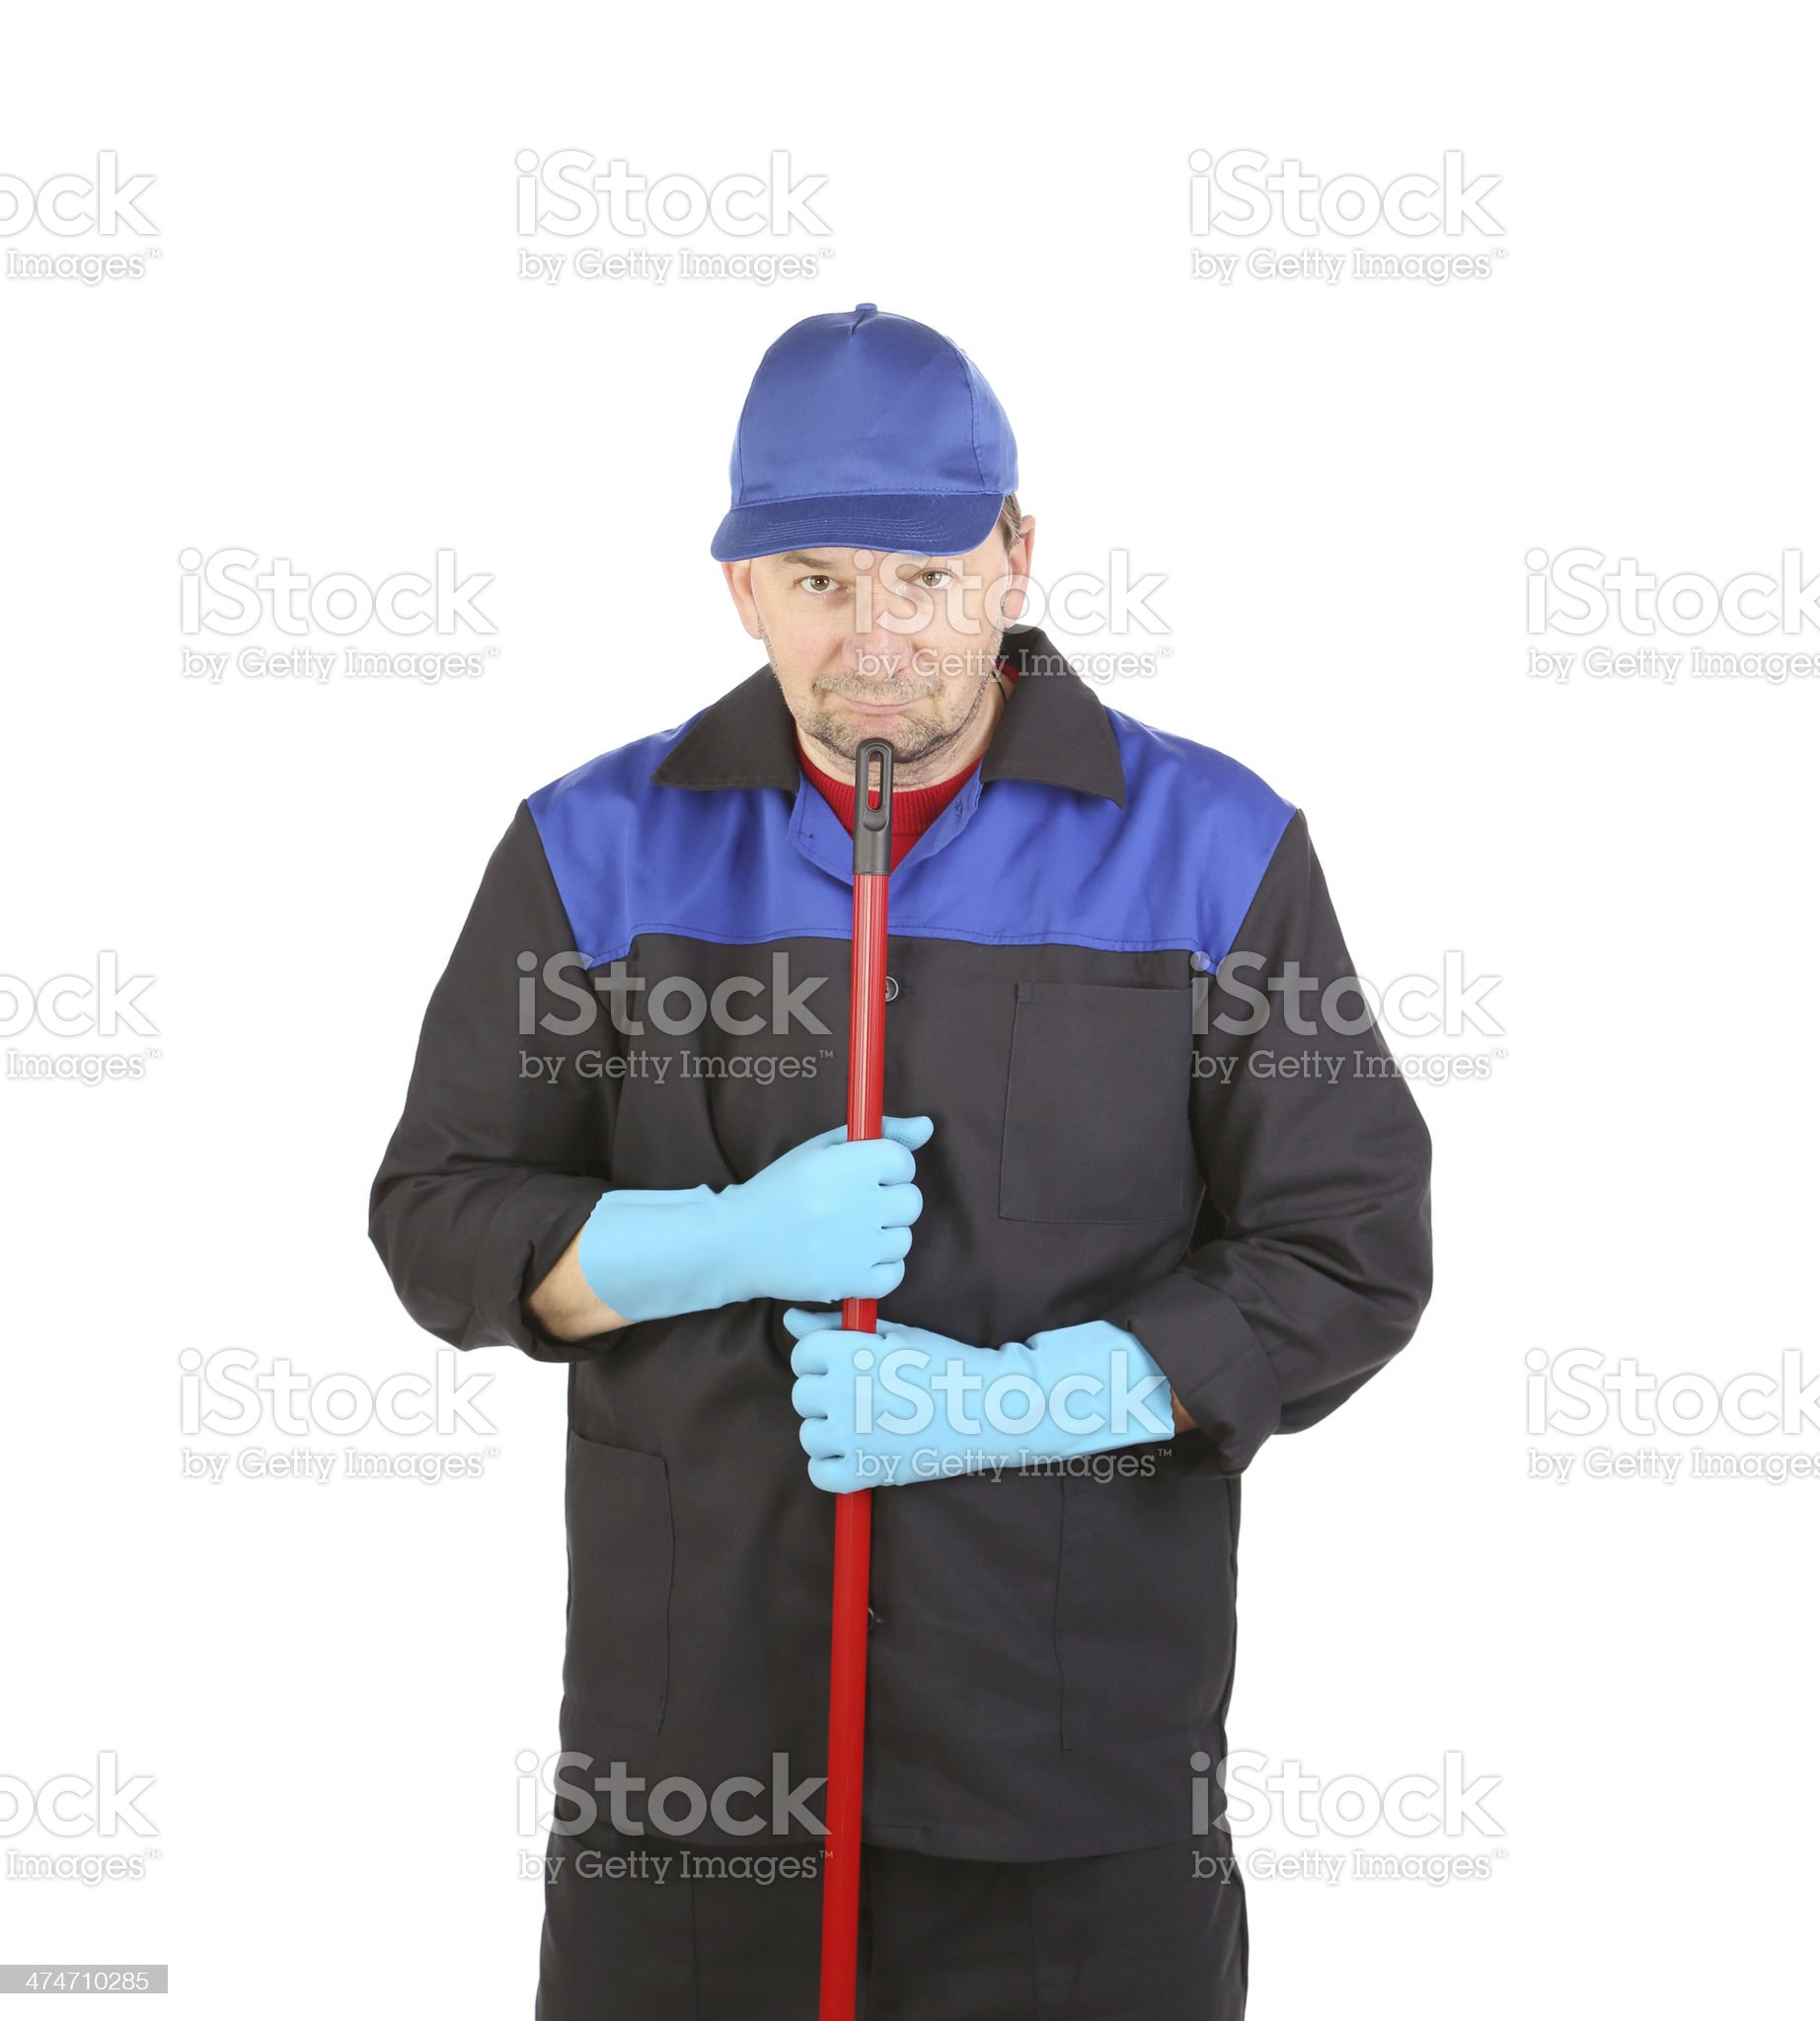 Man in workwear with mop royalty-free stock photo